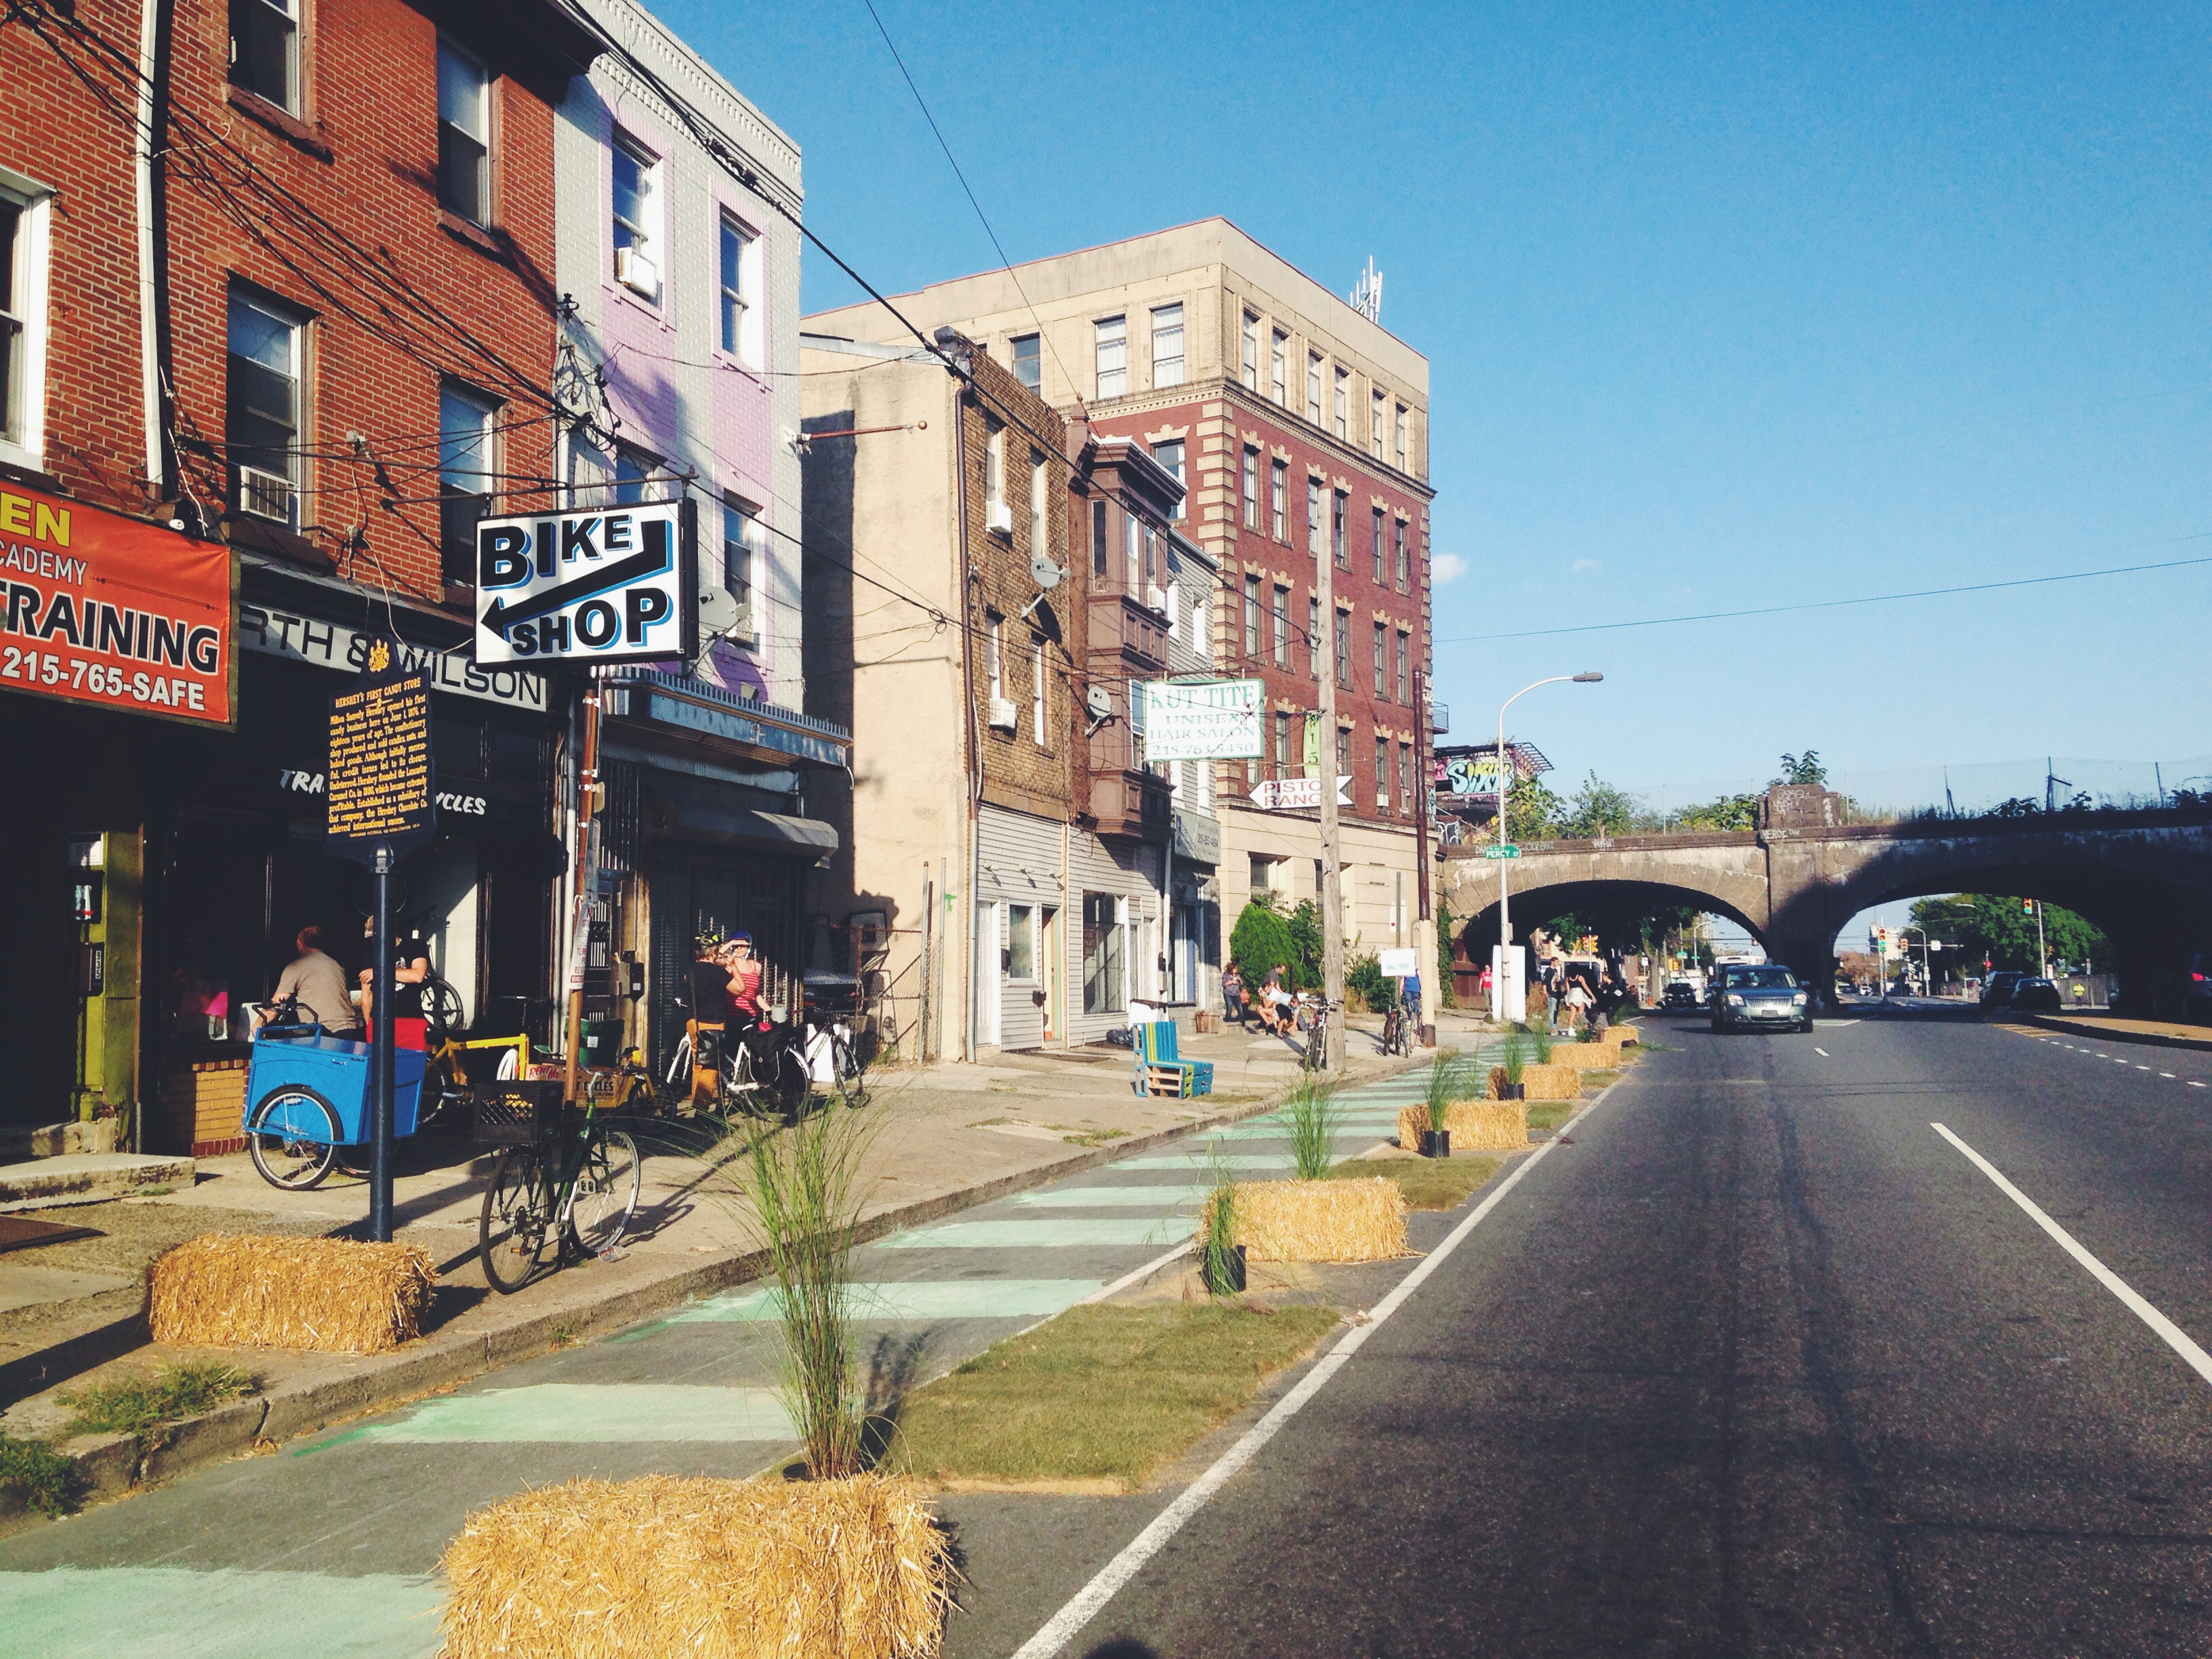 A 2014 pop-up greenway on the westbound lane on the 900 block of Spring Garden Street, one block from the accident on 10th and Spring Garden Streets. Credit: Jon Geeting/PlanPhilly